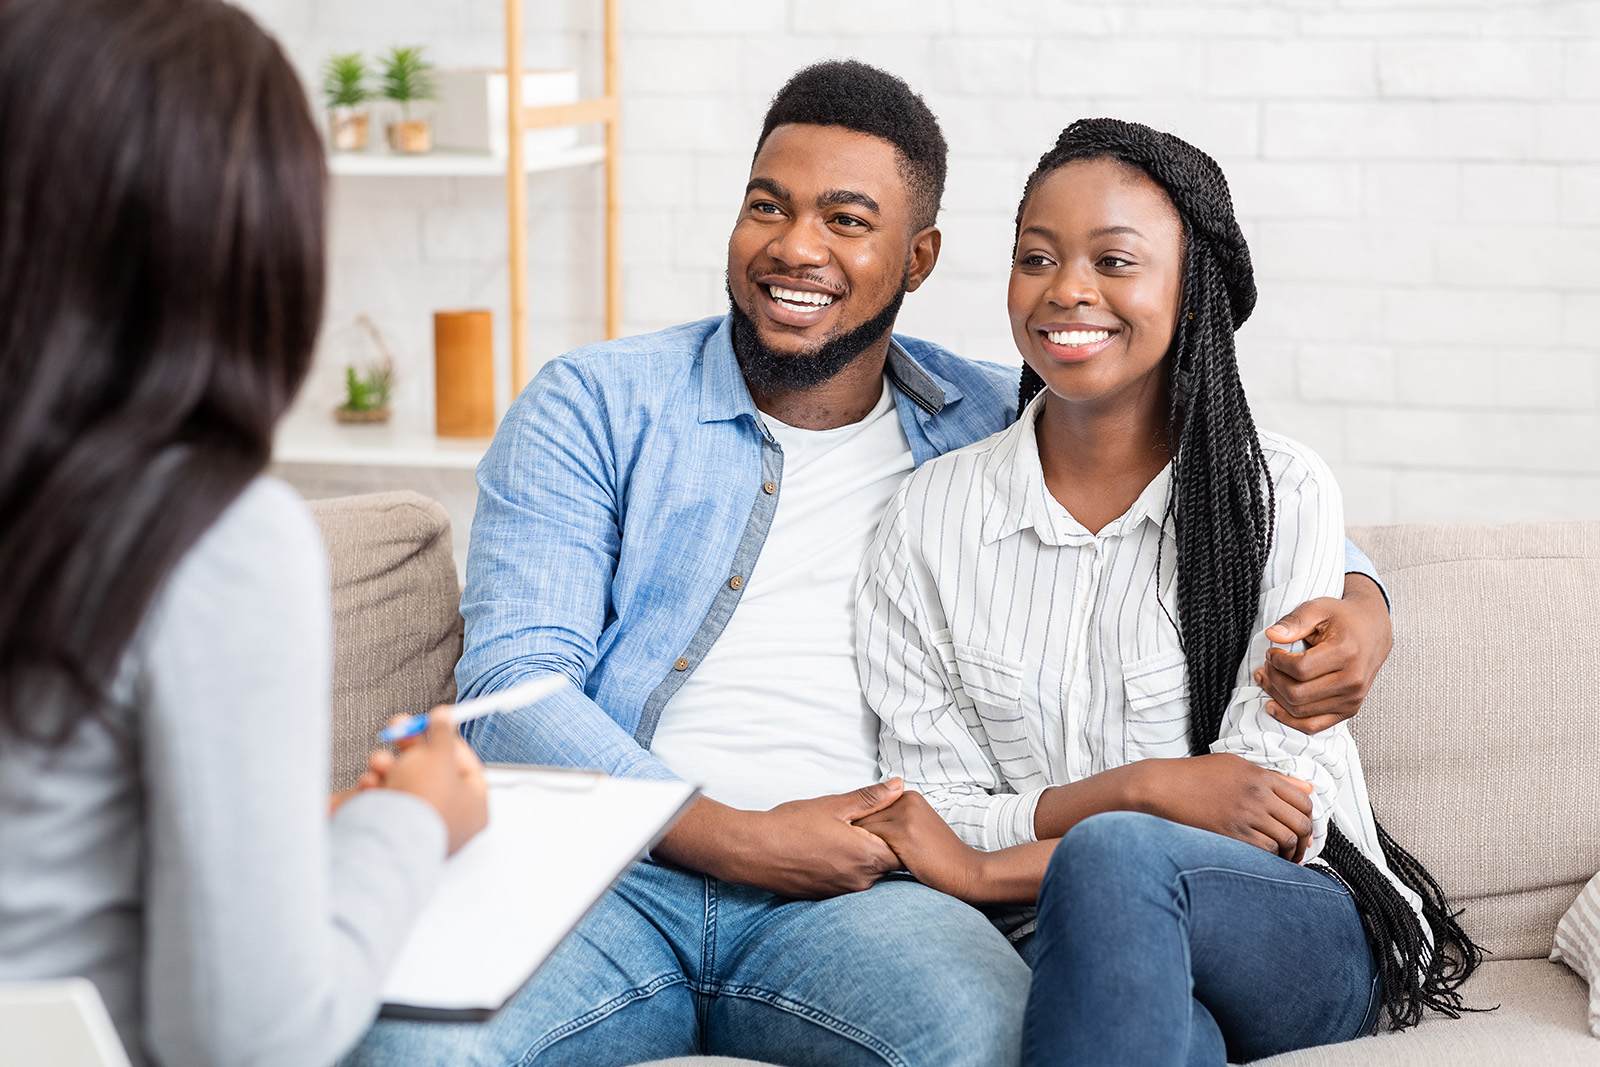 Compassionate Counseling helps couples marital therapy